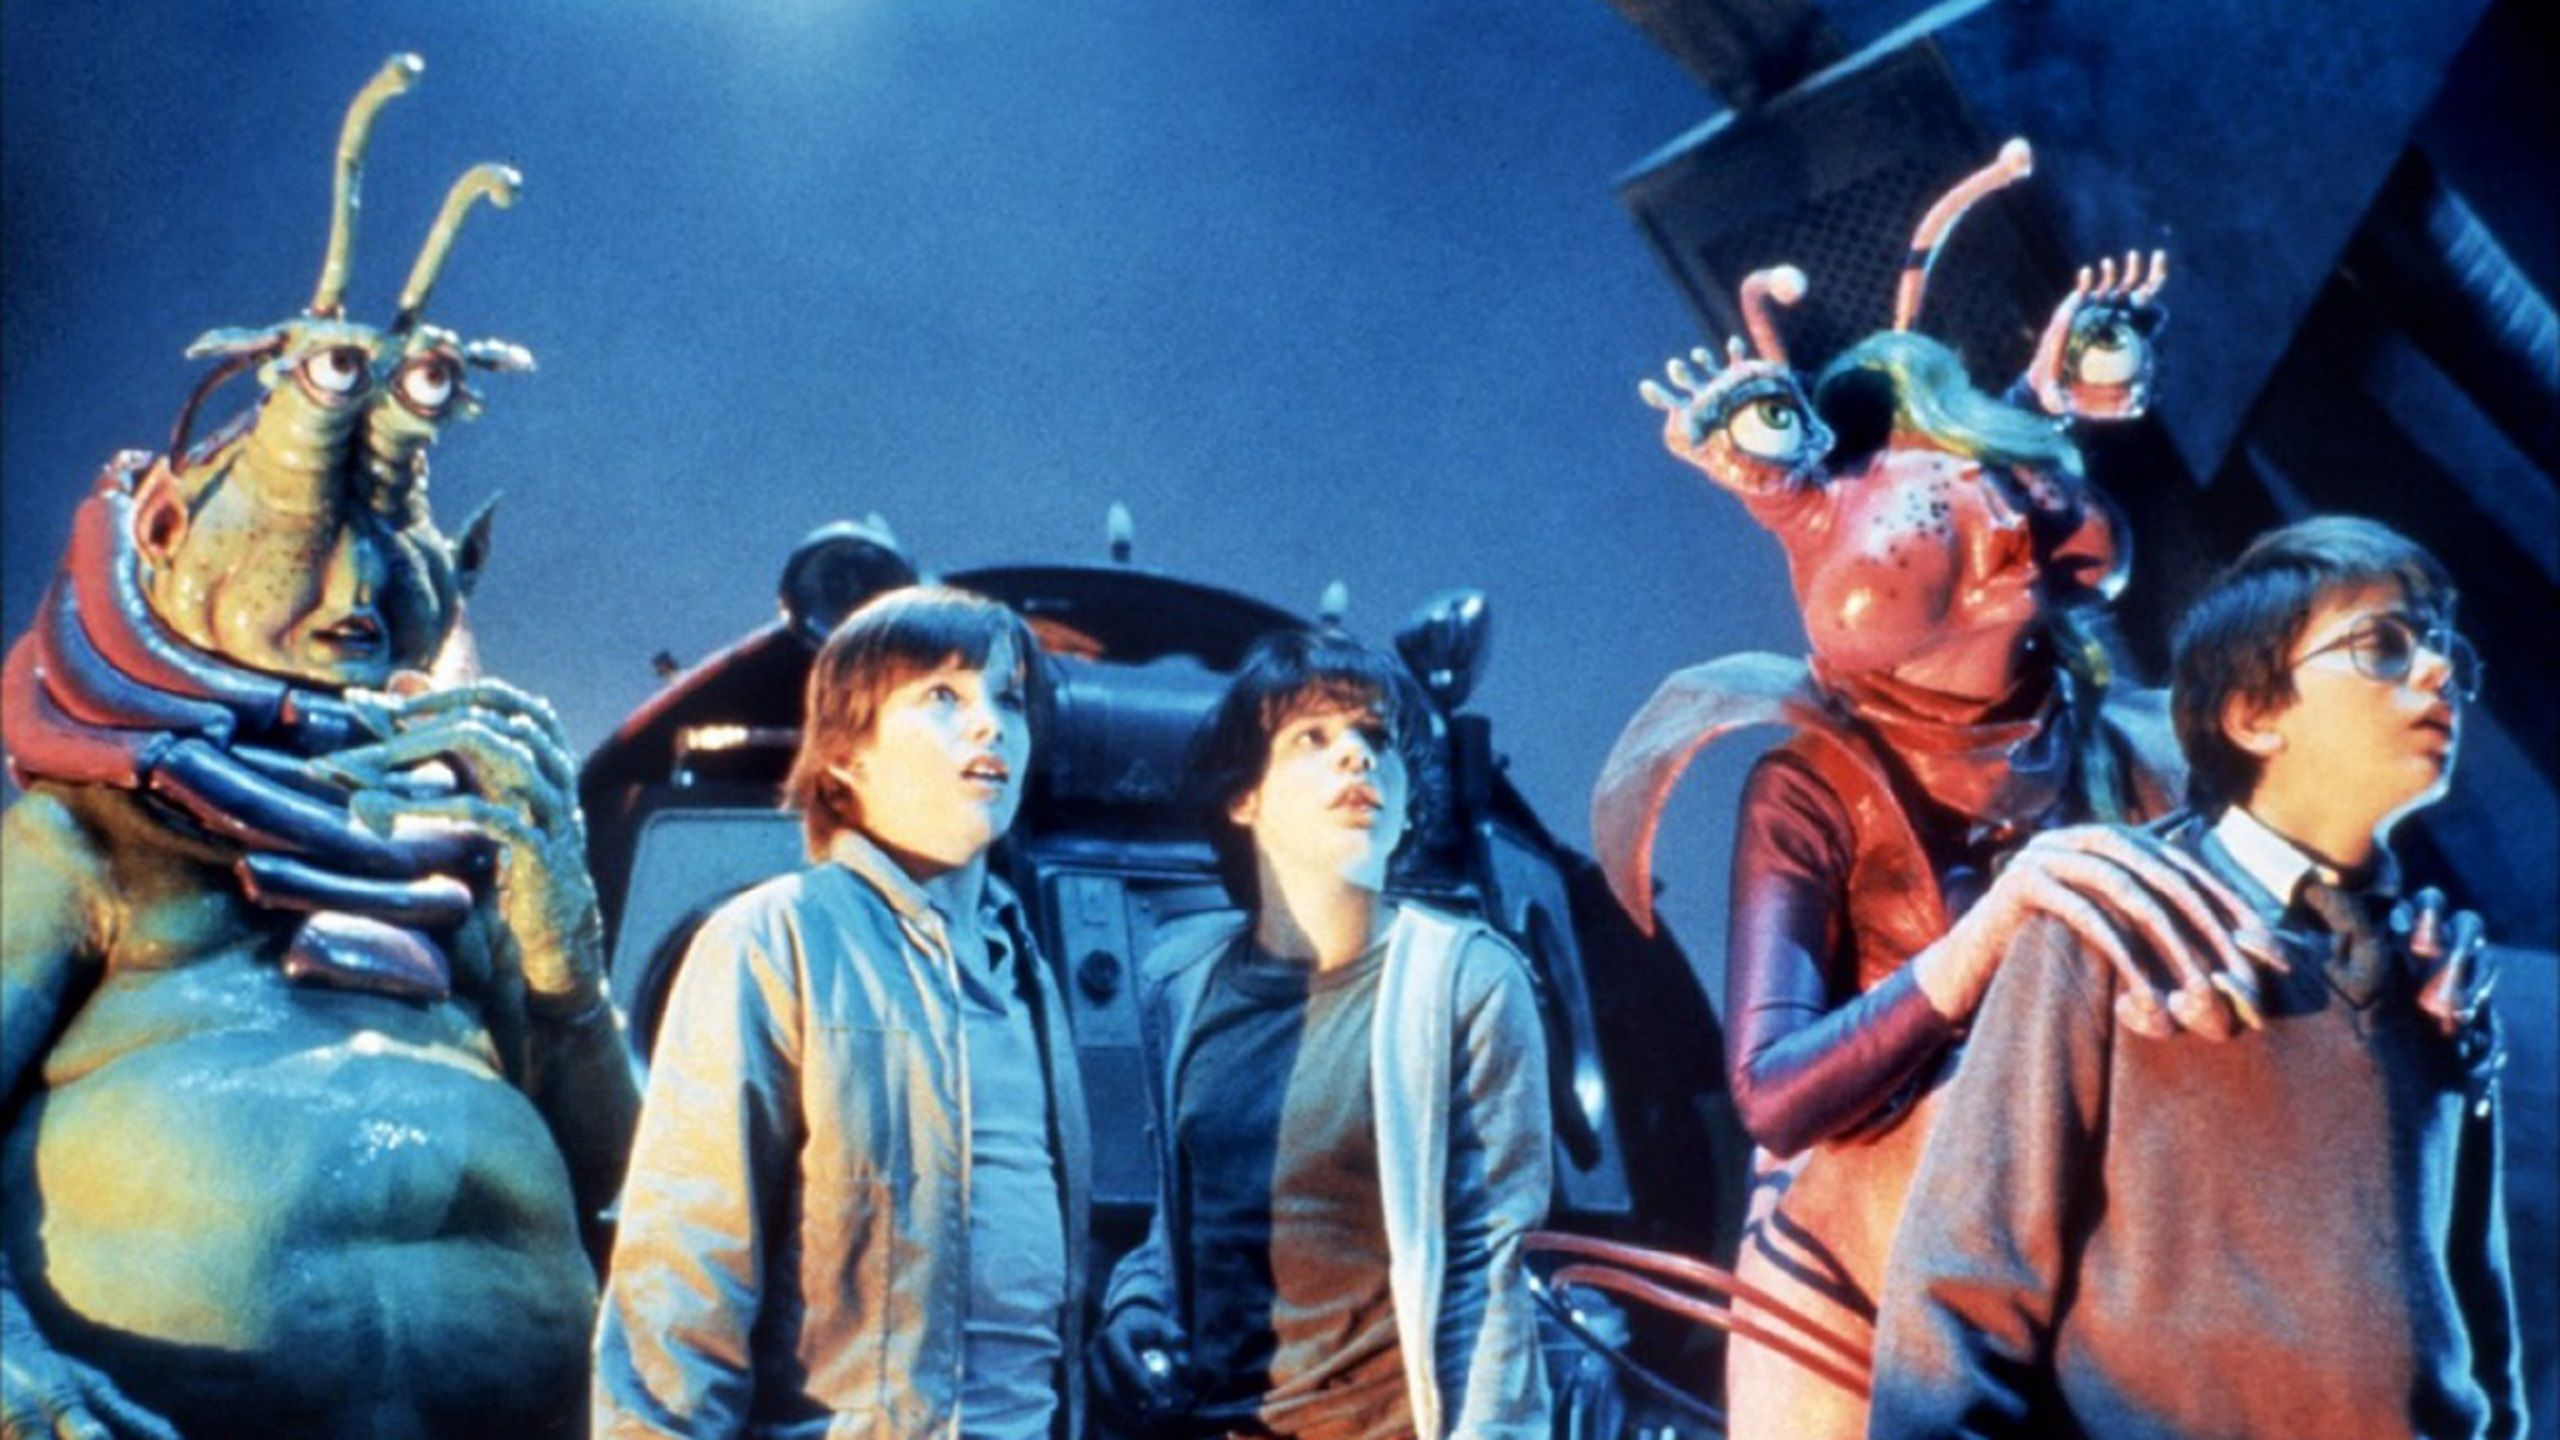 Explorers (1985) movie alien friends encounter